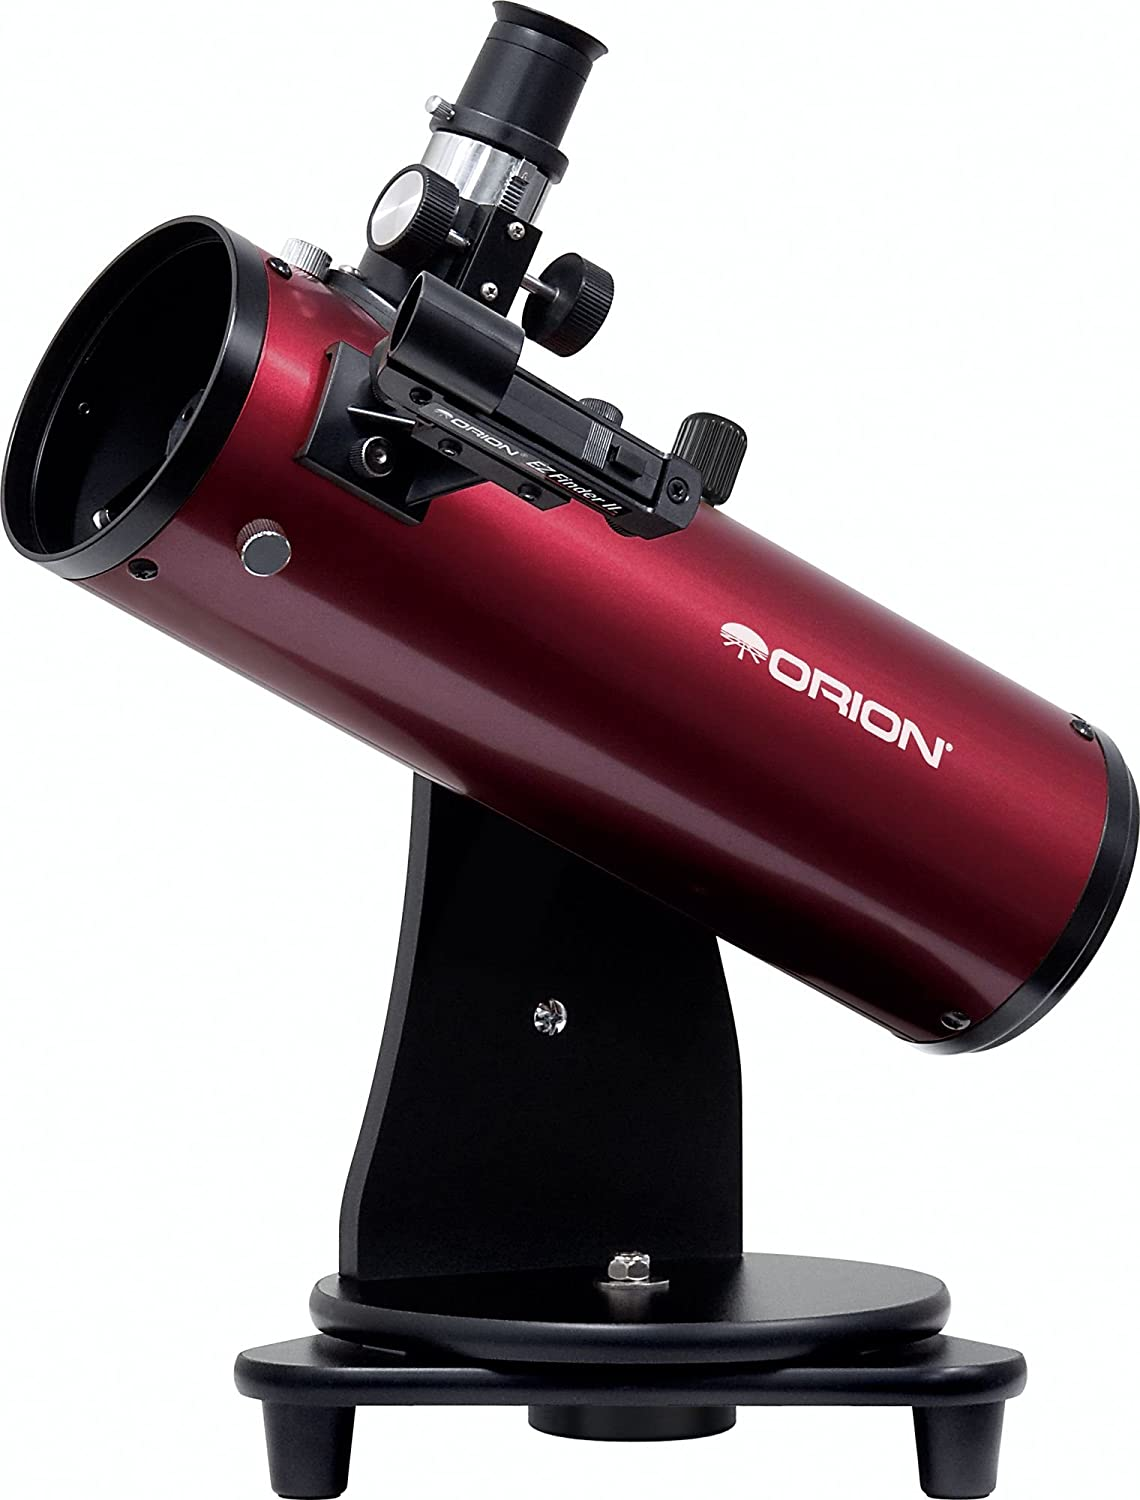 Orion 10012 SkyScanner 100mm TableTop Reflector Telescope (Burgundy) Optronic Technologies Inc